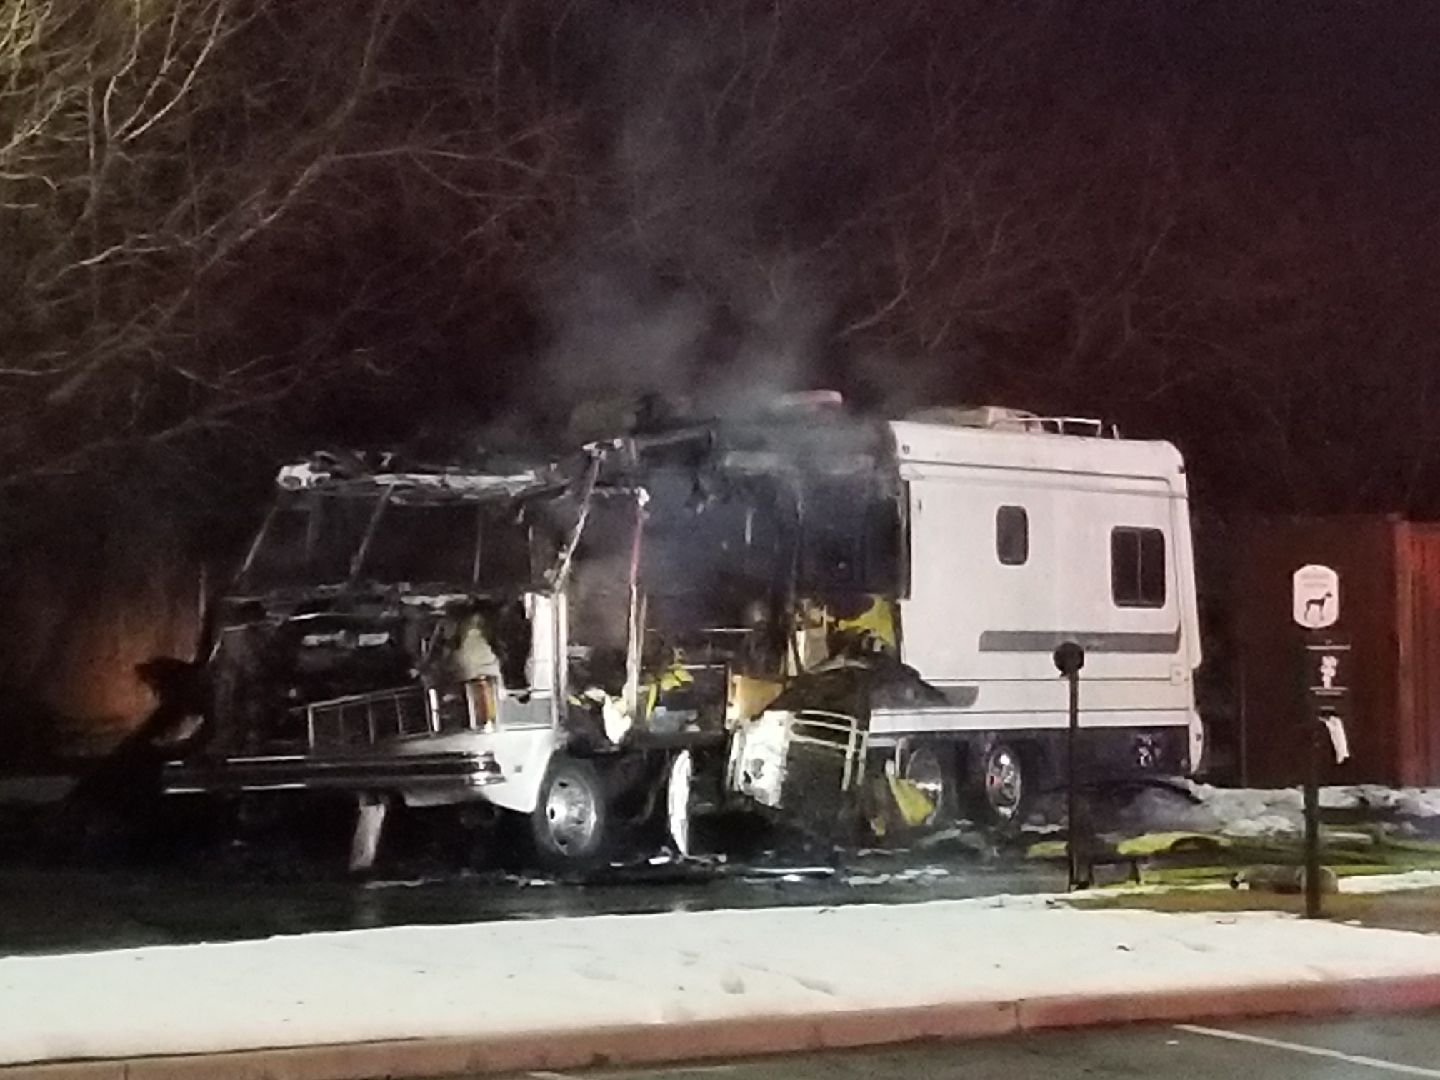 Motor home 39 a total loss 39 after catching fire in west for Motor city casino parking